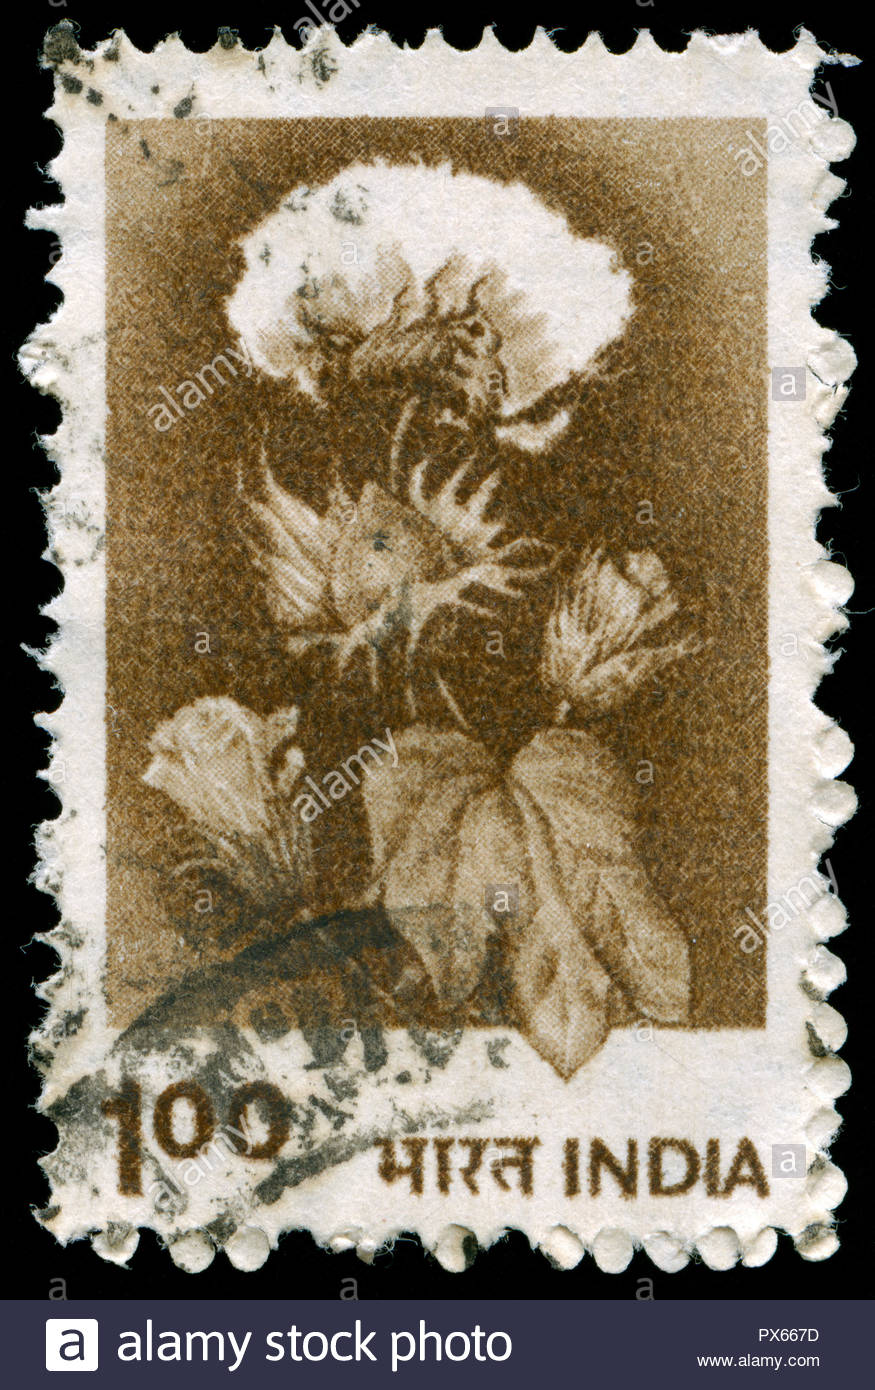 Postmarked stamp from India in the Agriculture series issued in 1980 - Stock Image